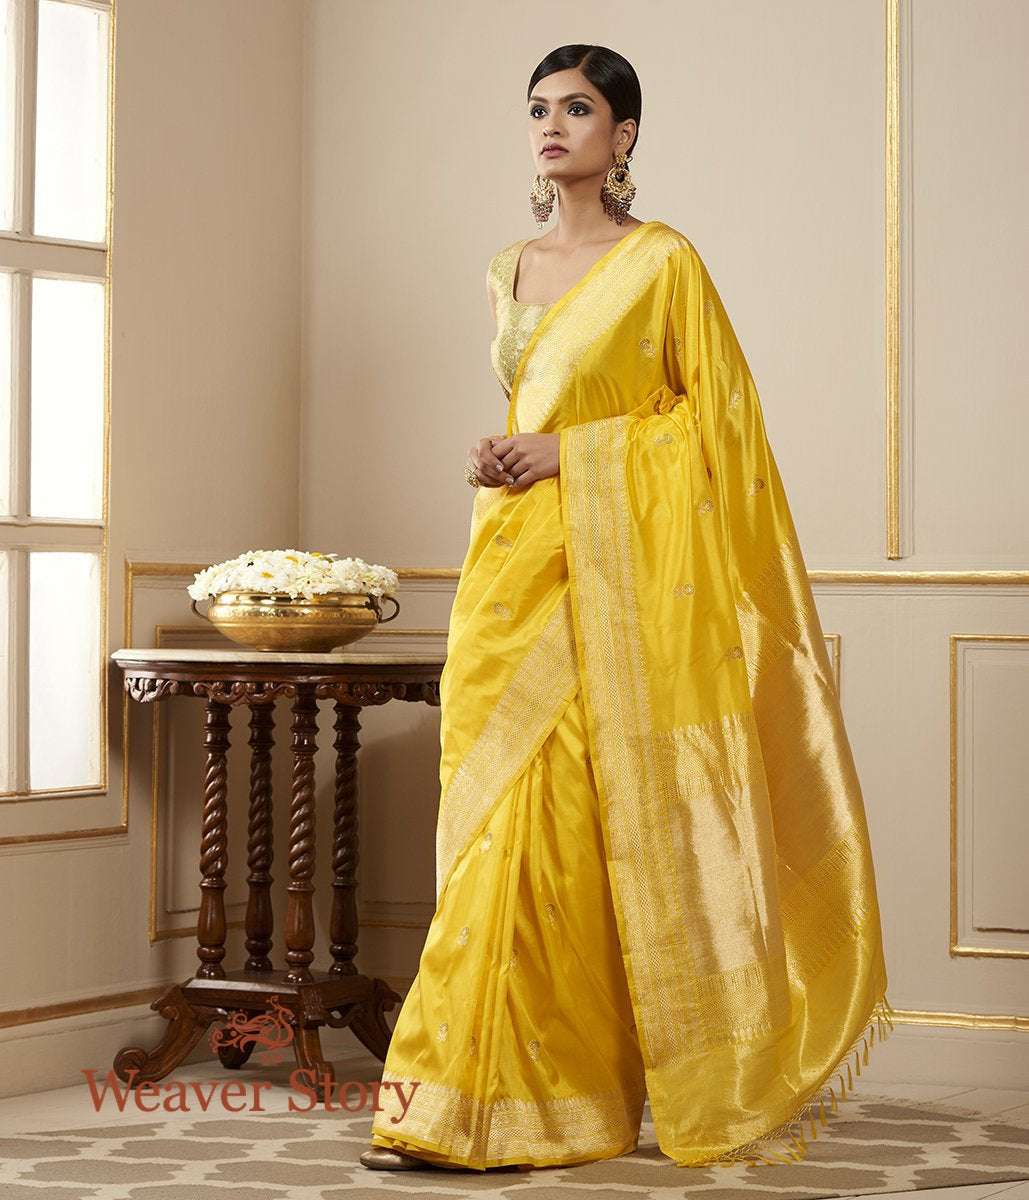 Handwoven Bright Yellow Floral Meenakari Booti Saree